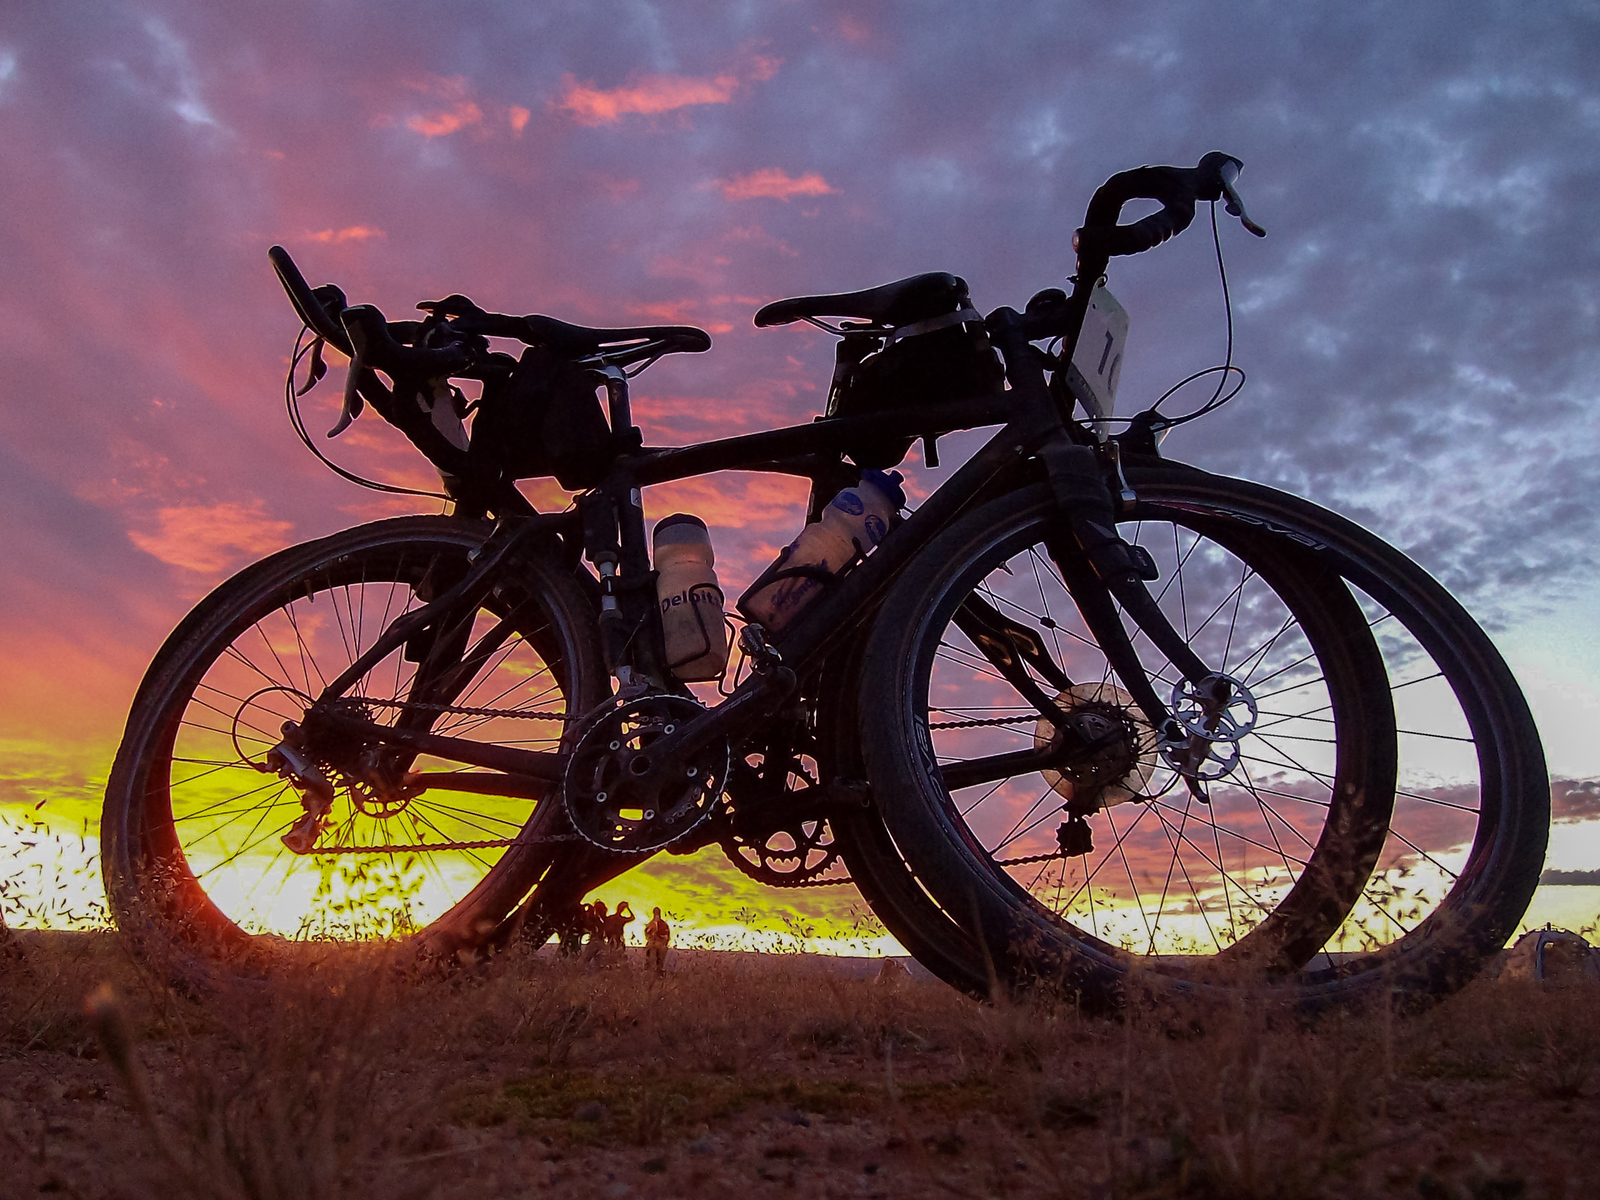 Our bikes at sunset.